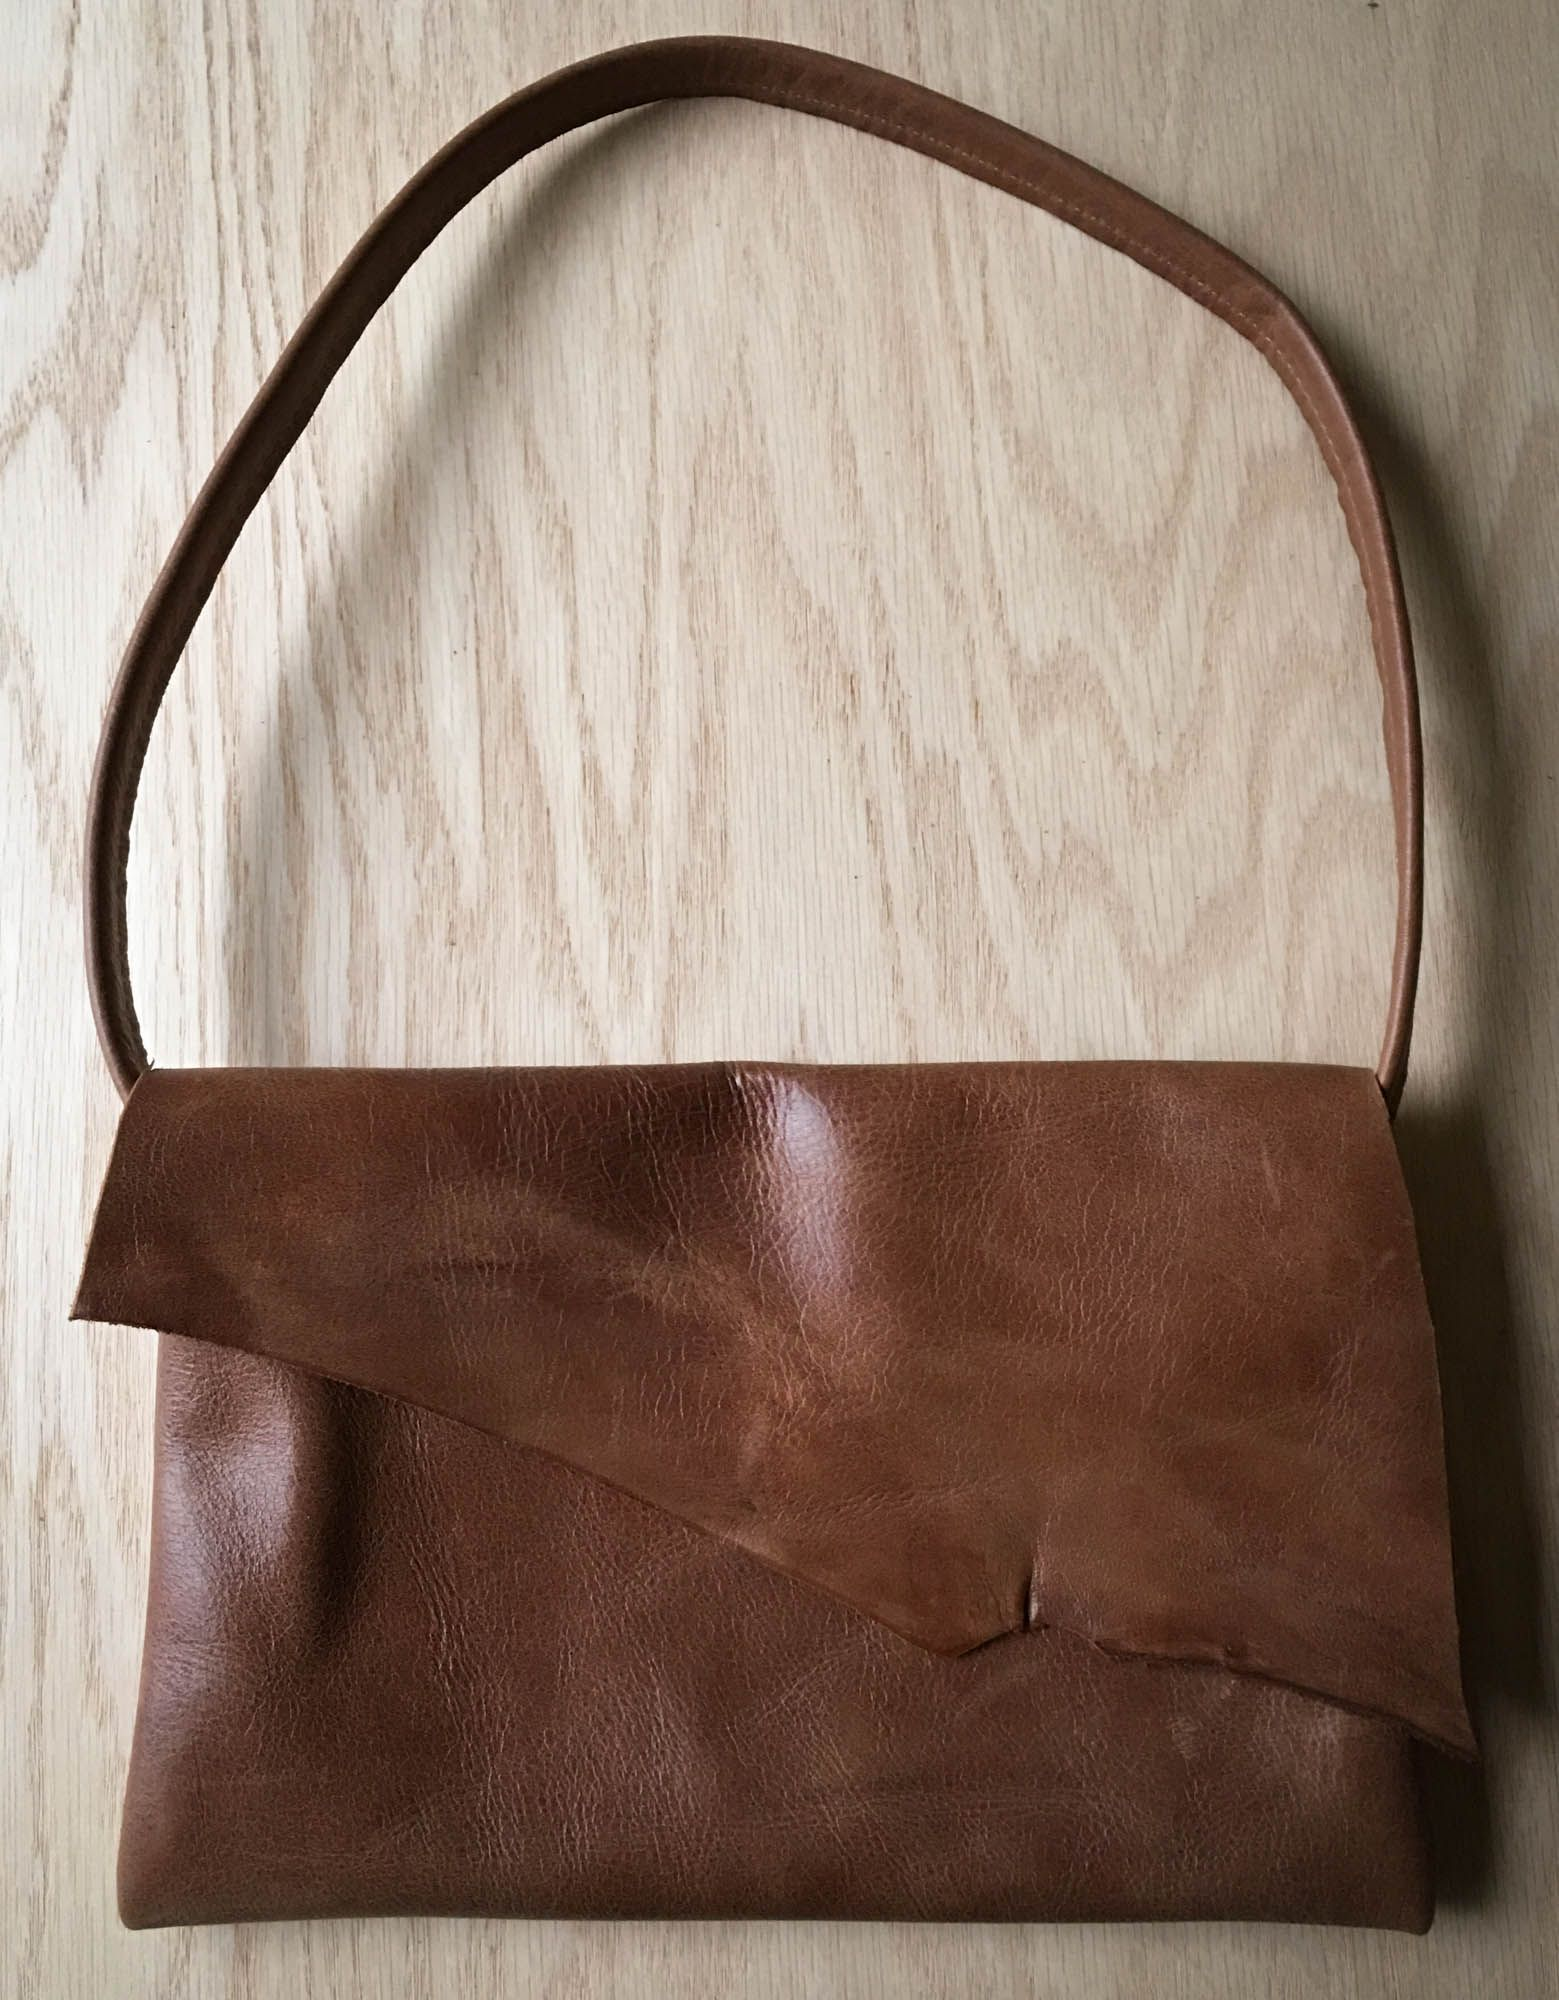 This Dark Leather Purse Is Simple In Design And A True Classic Modeled After Our